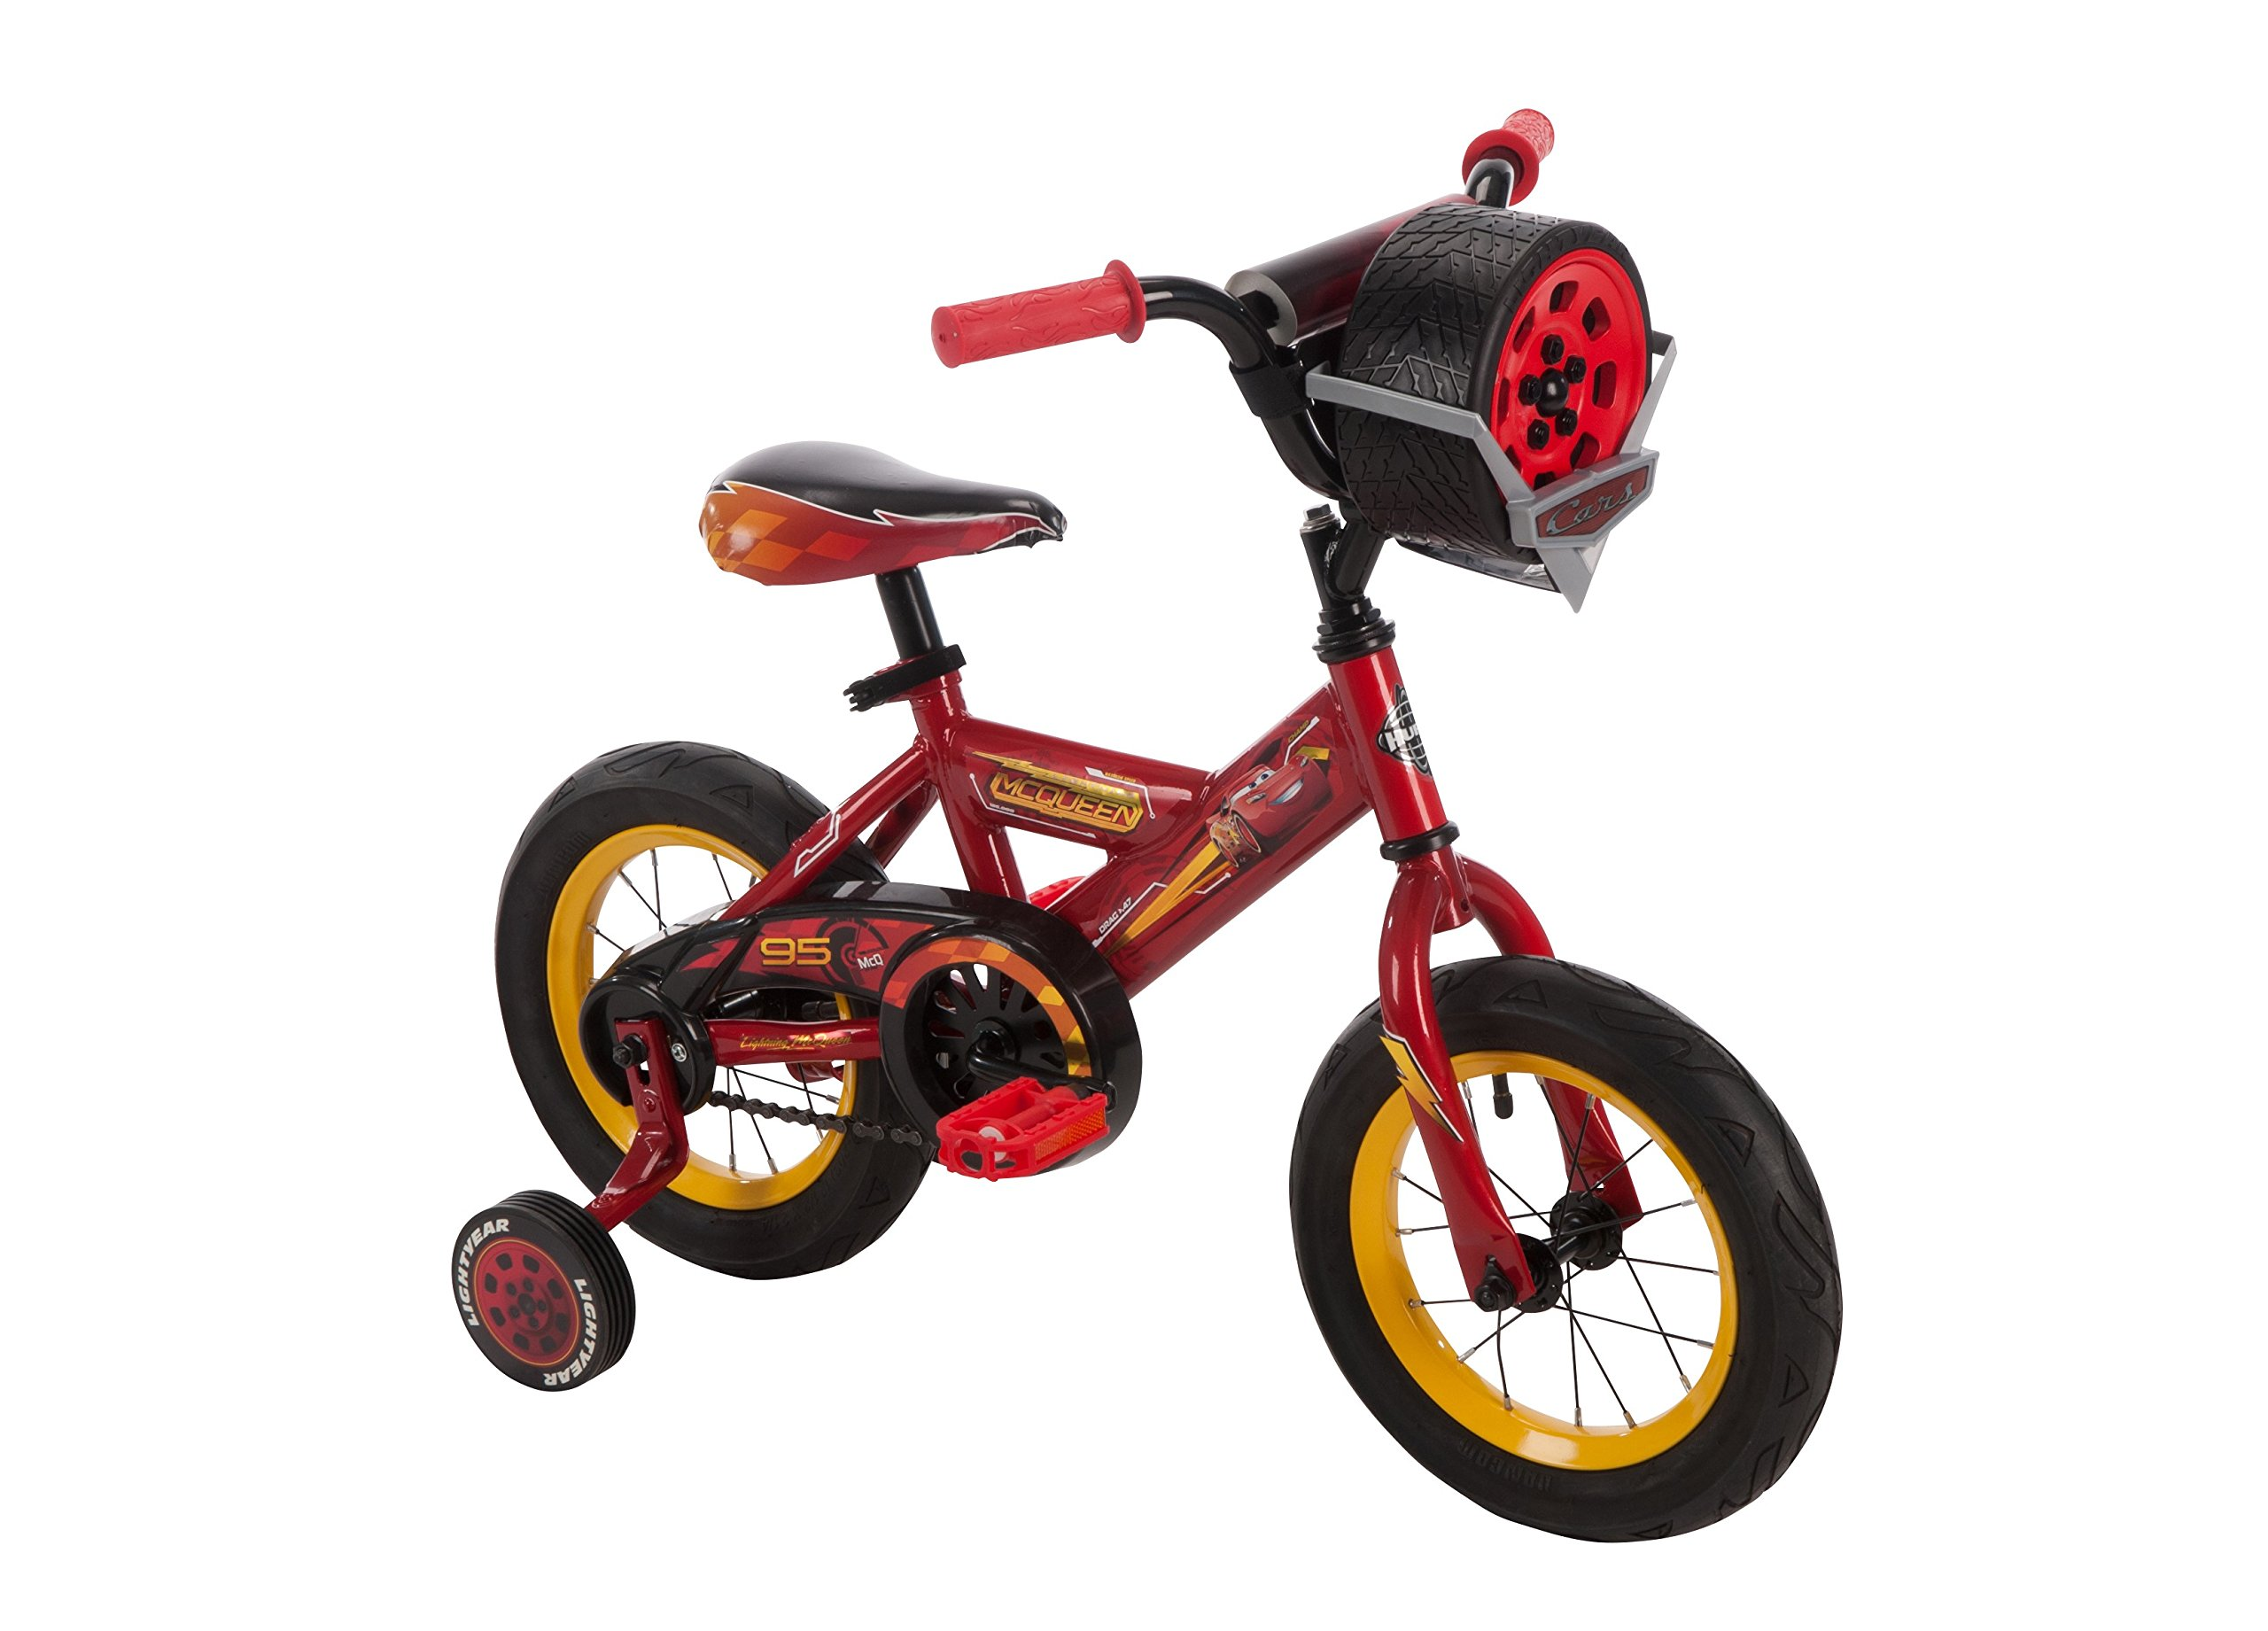 Huffy 12'' Disney•Pixar Cars 3 Bike by, Ages 3-5, Height 37-42